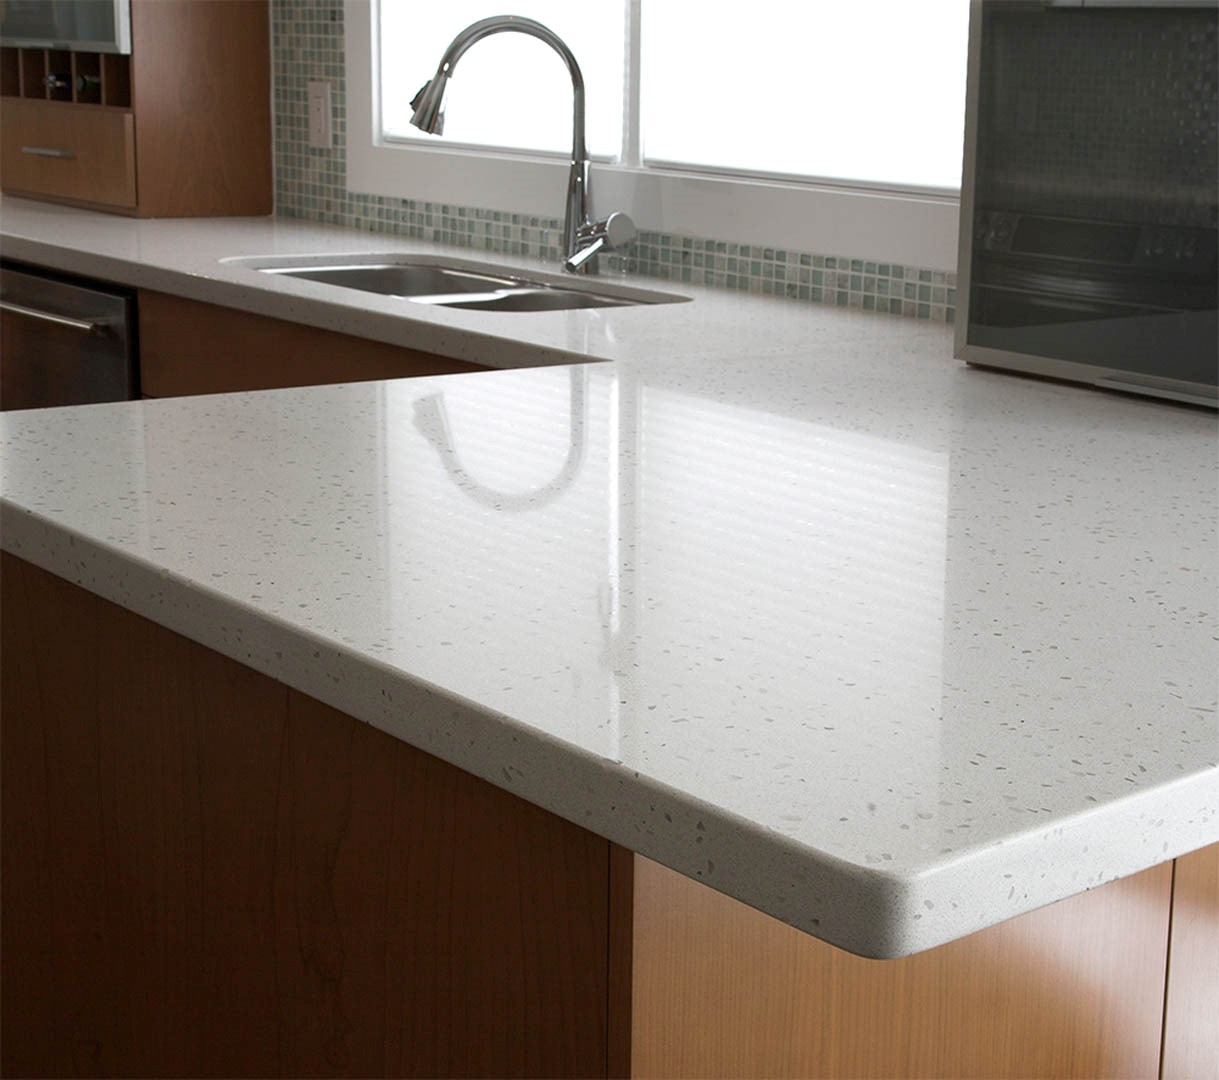 Calgary Kitchen Countertops by Silkstone and Granite